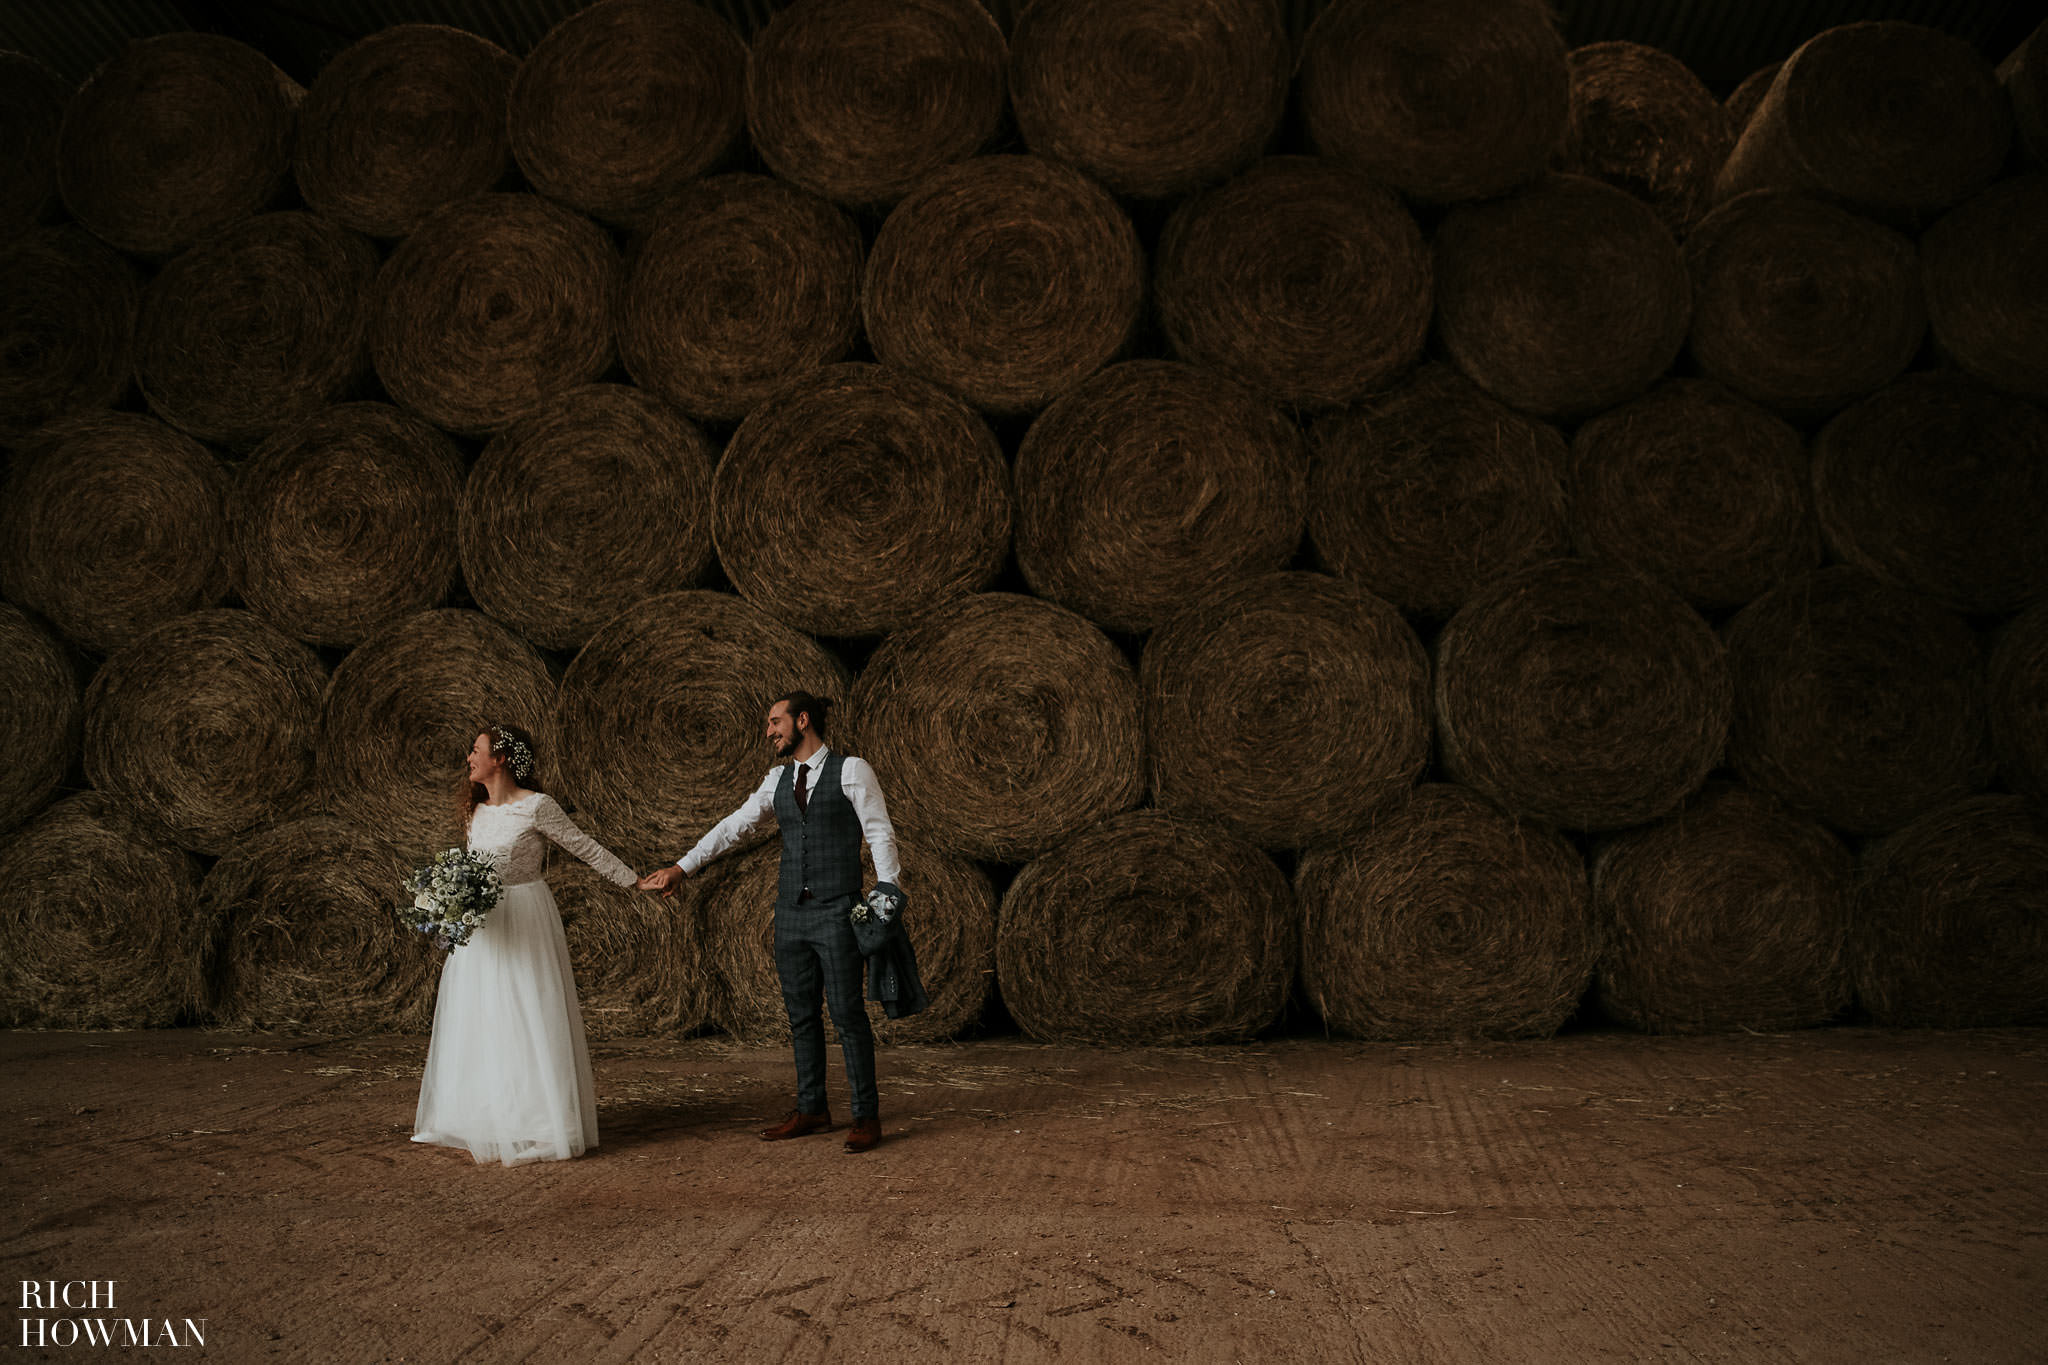 Huntstile Organic Farm Wedding in a Barn